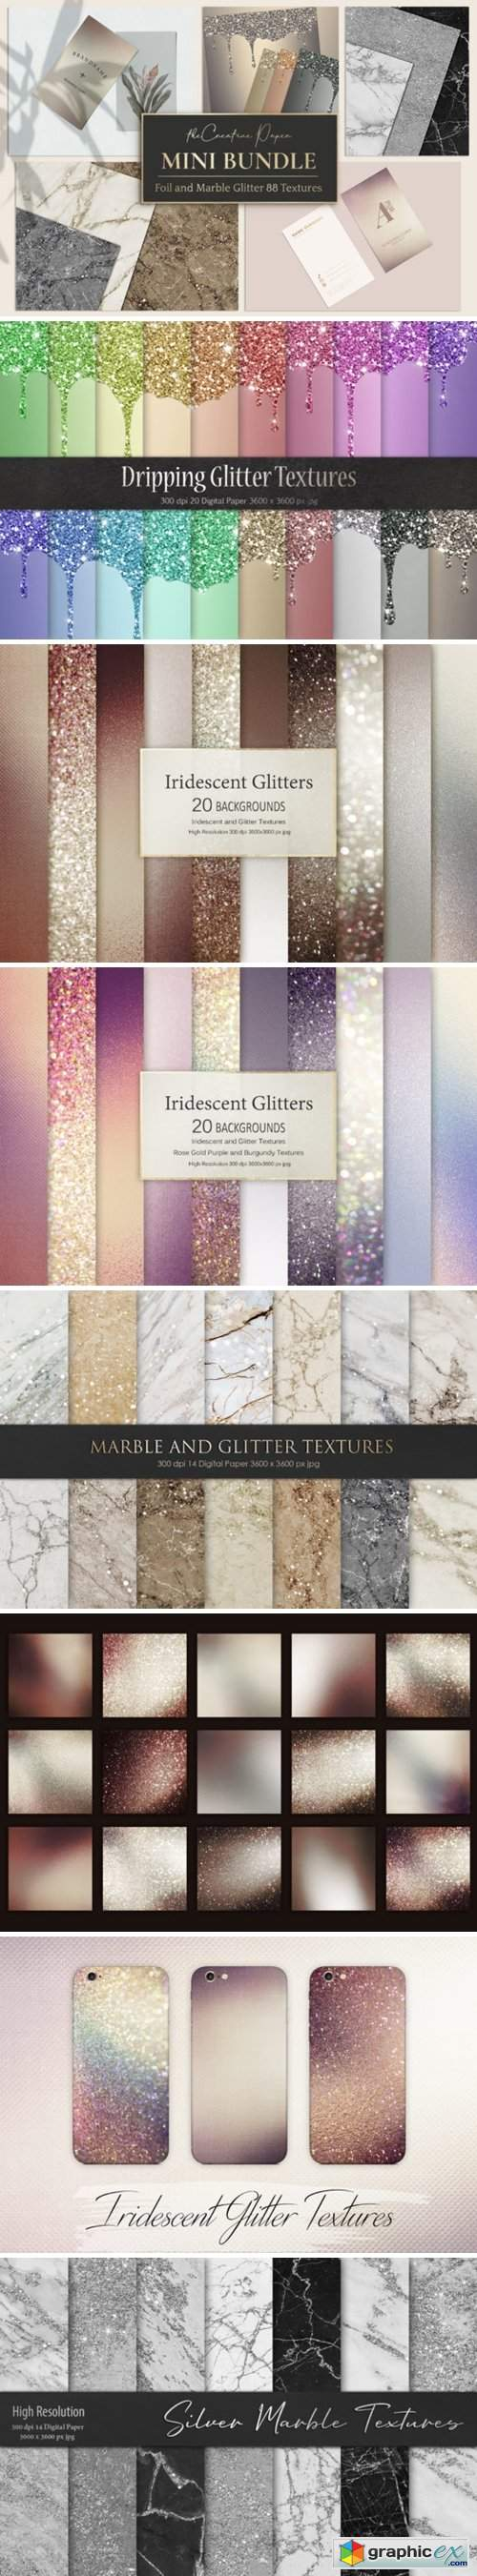 Rose Gold Foil & Marble Glitter Textures